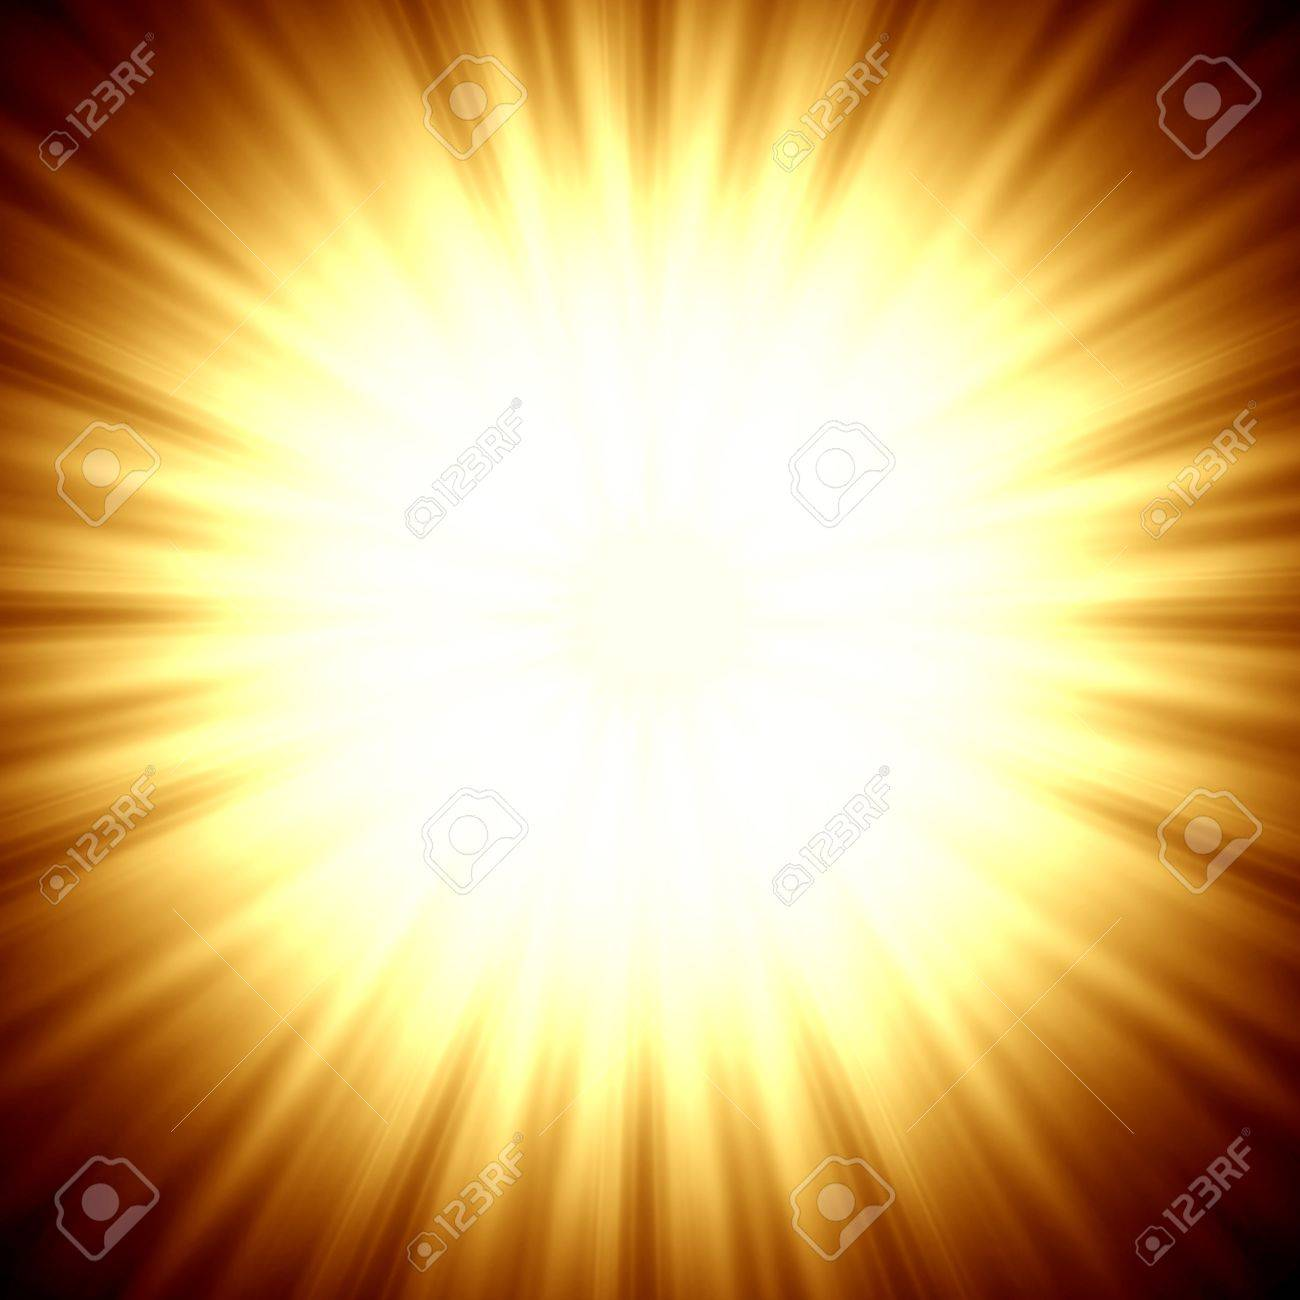 A star burst or lens flare over a black background  It also looks like an abstract illustration of the sun Stock Illustration - 12891529